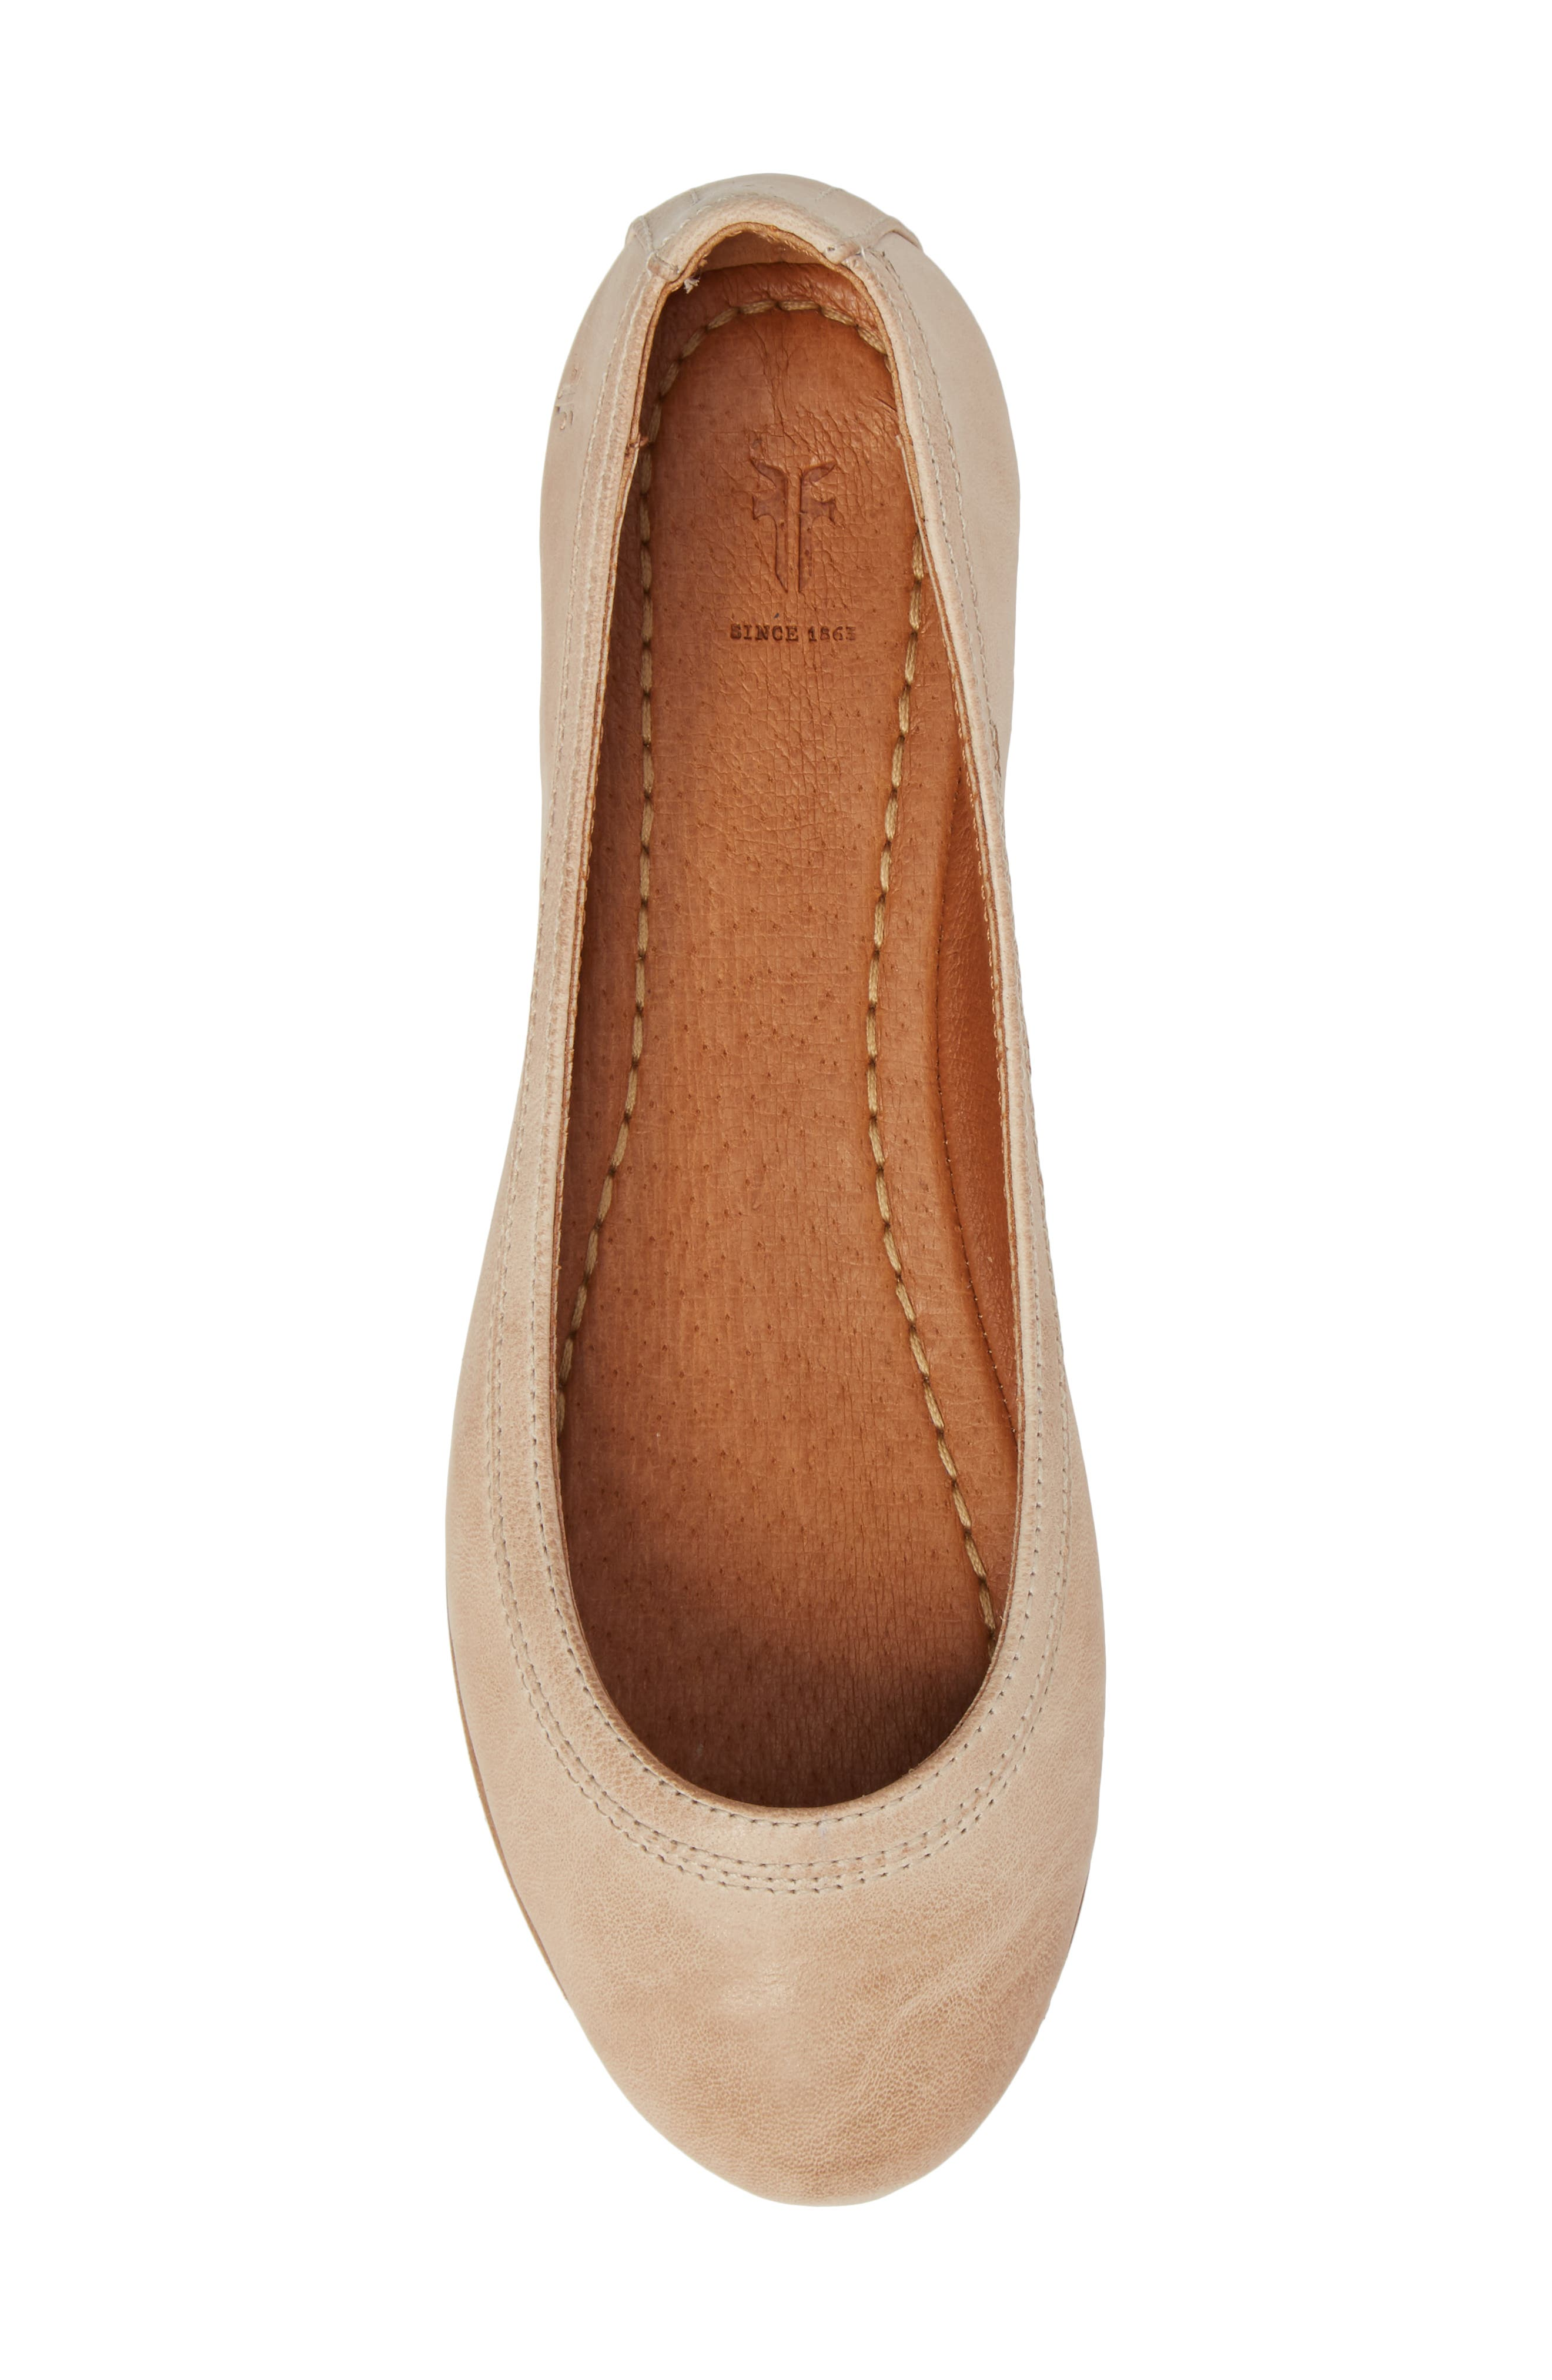 'Carson' Ballet Flat,                             Alternate thumbnail 6, color,                             CREAM LEATHER